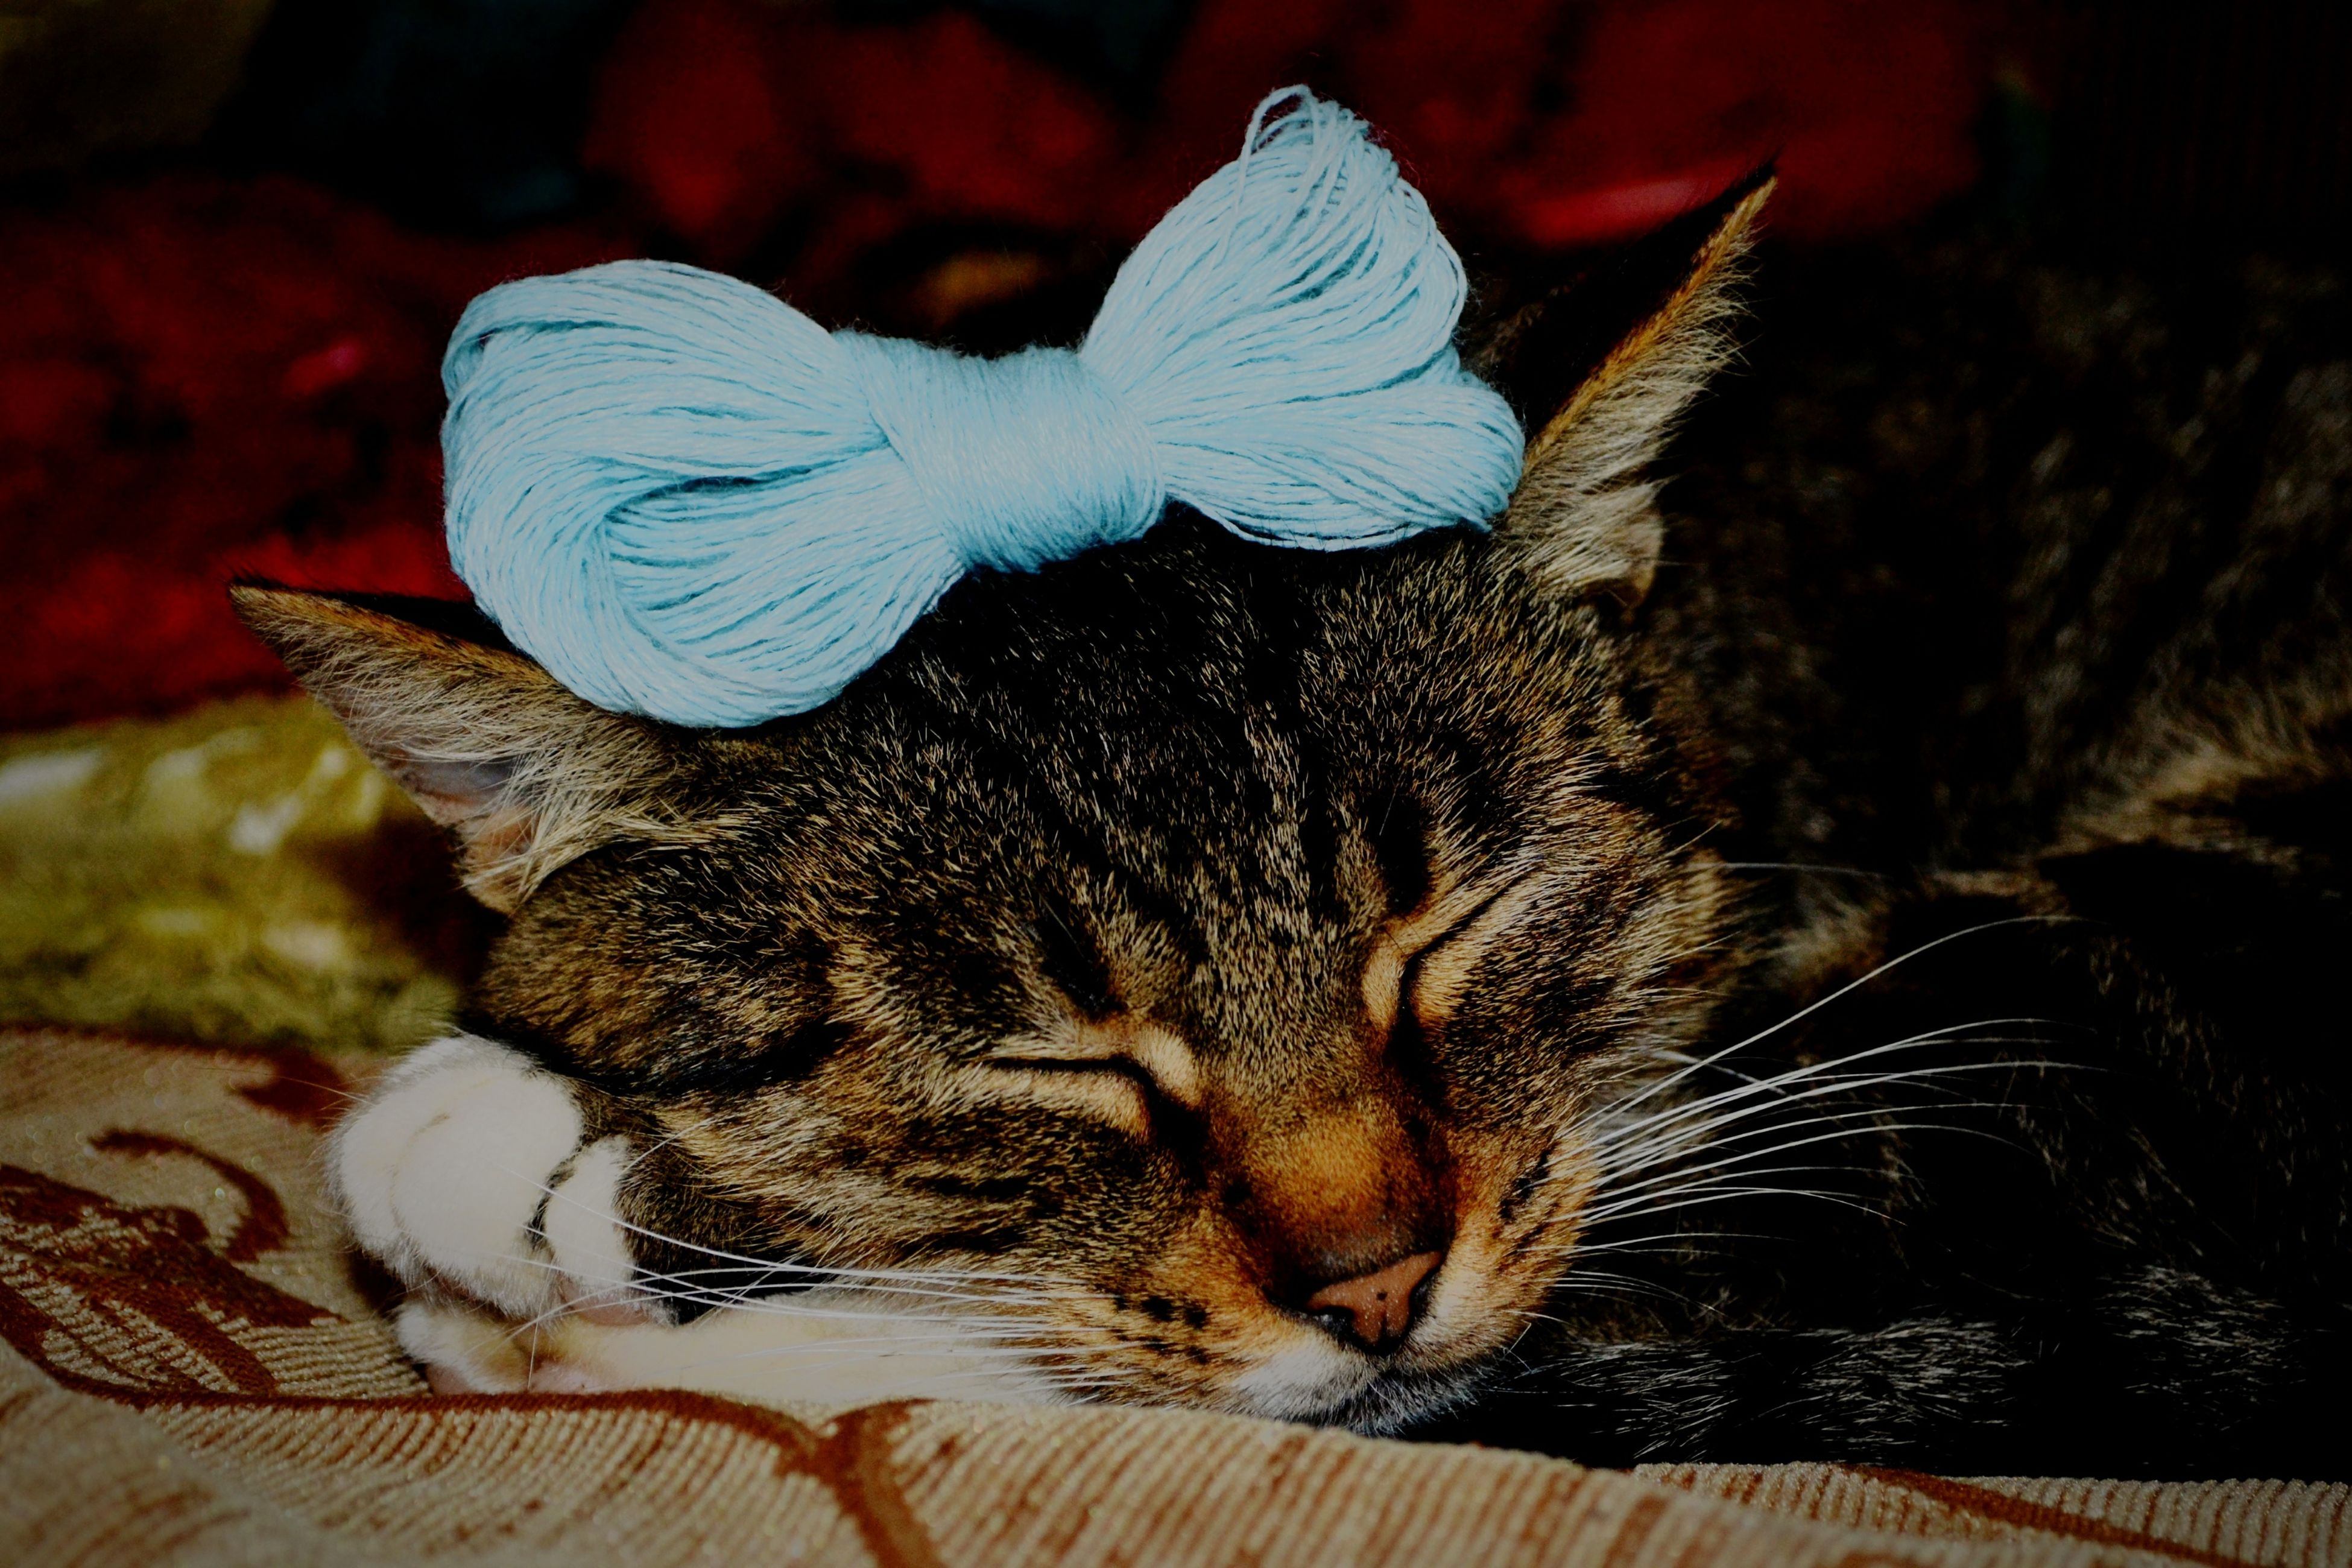 animal themes, one animal, domestic animals, pets, mammal, indoors, relaxation, lying down, domestic cat, close-up, resting, bed, feline, animal head, cat, whisker, no people, black color, focus on foreground, home interior